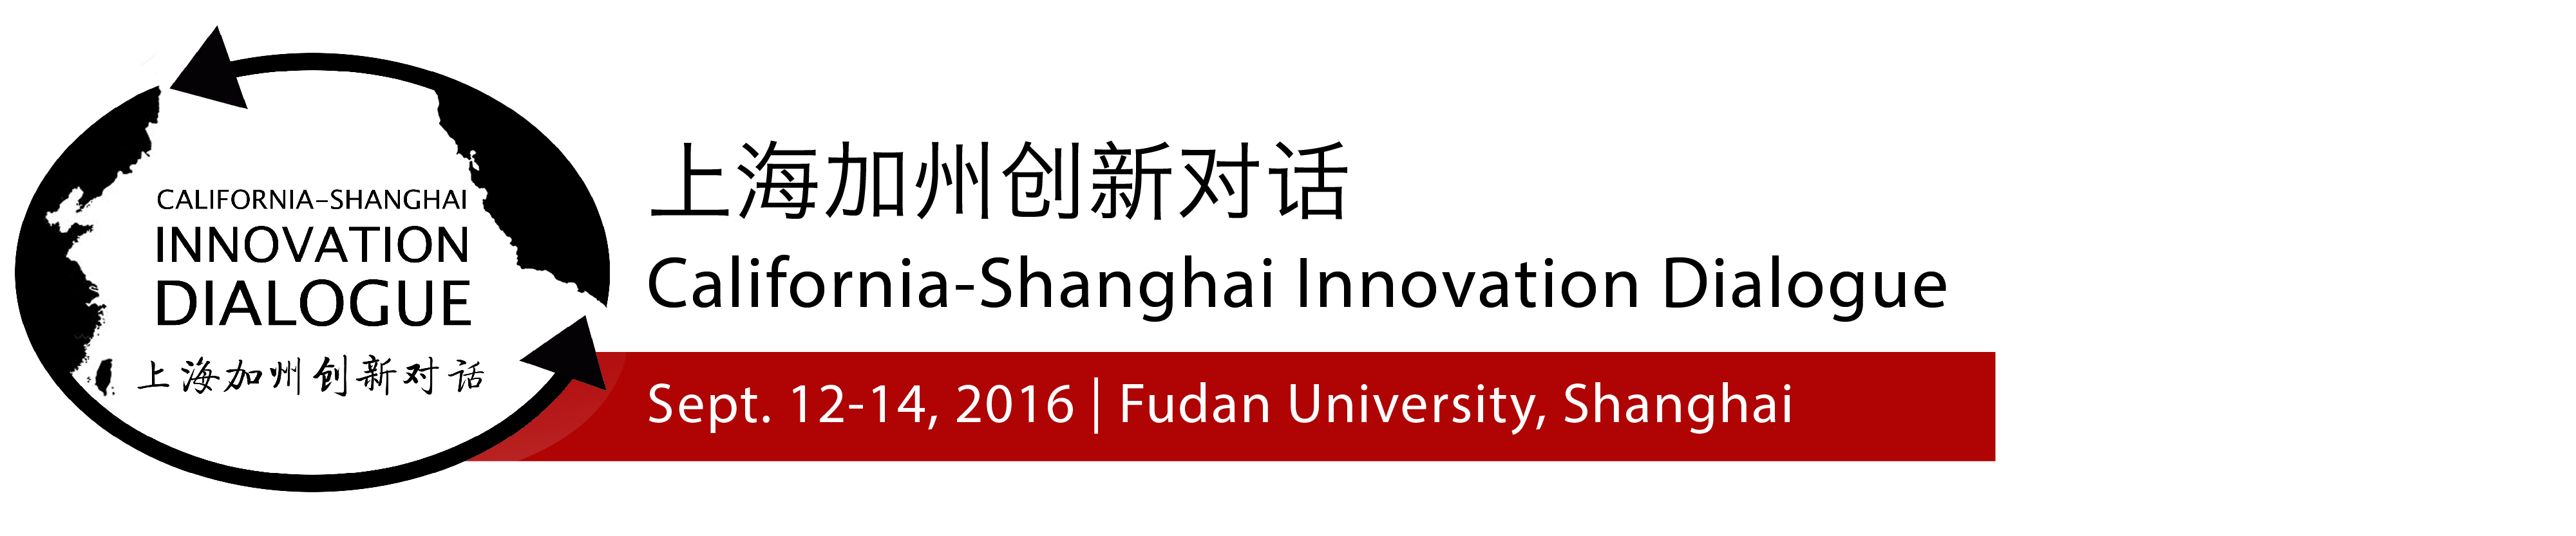 California-Shanhai Innovation Dialogue